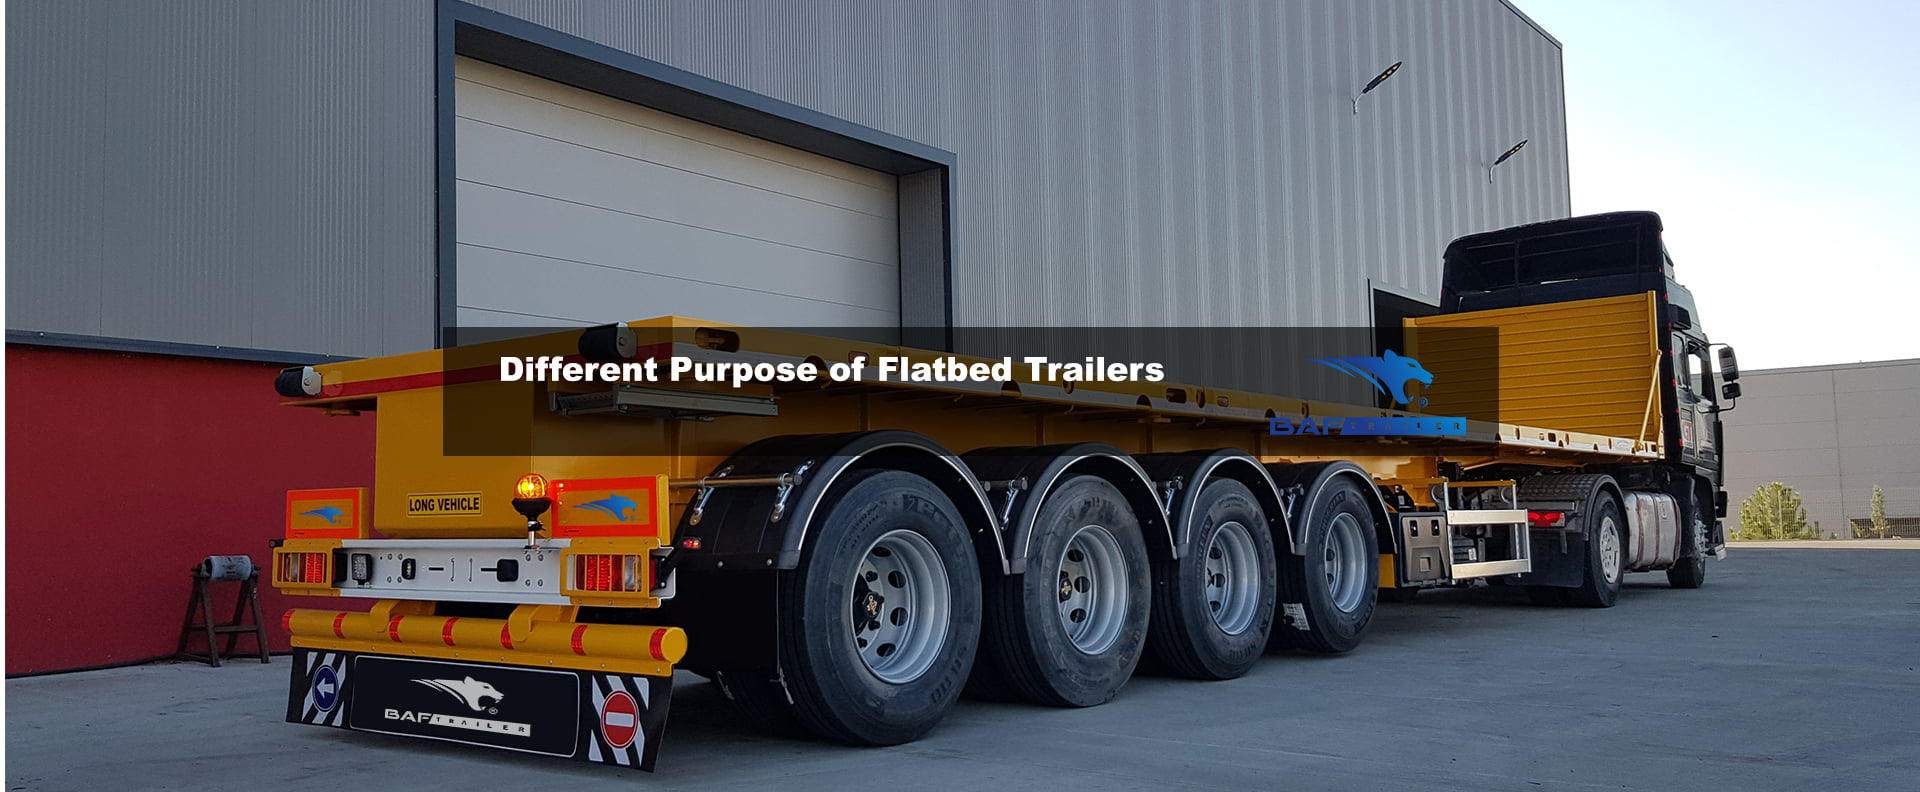 Different Purpose of Flatbed Trailers